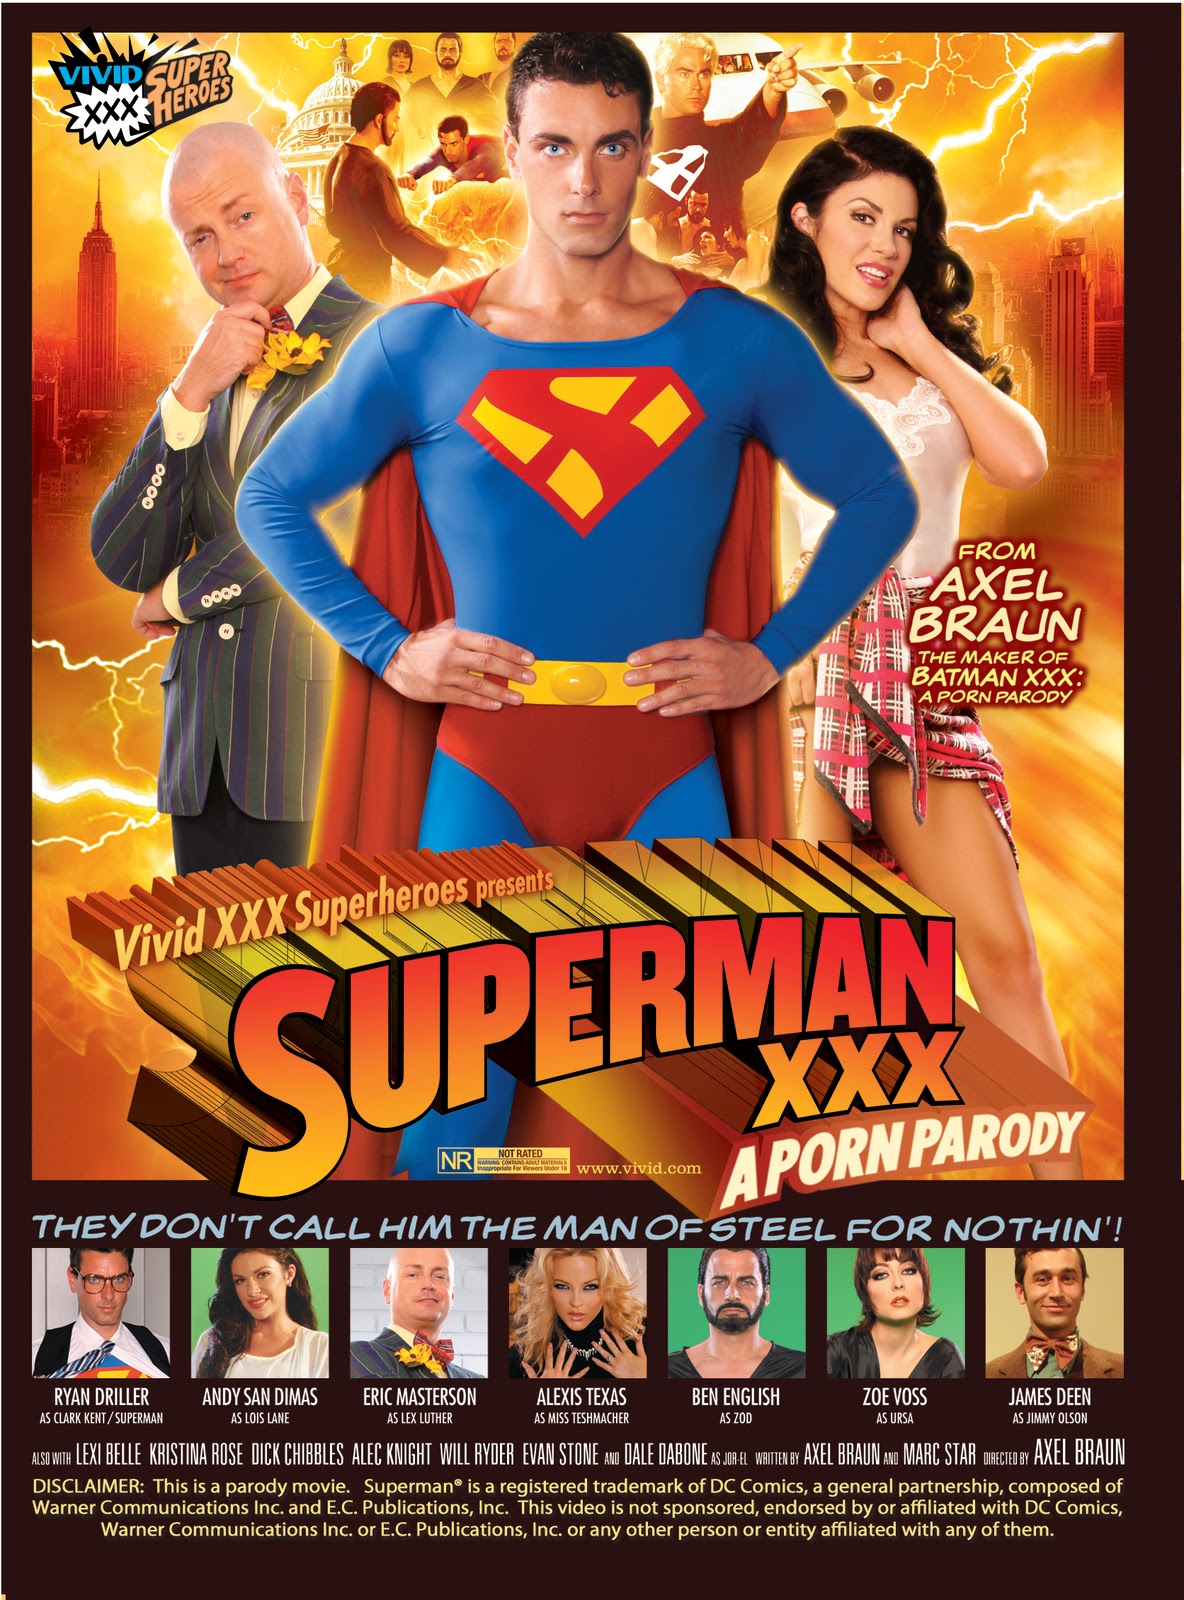 Superman XXX Porn Parody Cover '' MaxXxCock '': Free Gay Porn Videos Online: Full: He's Gonna Like It